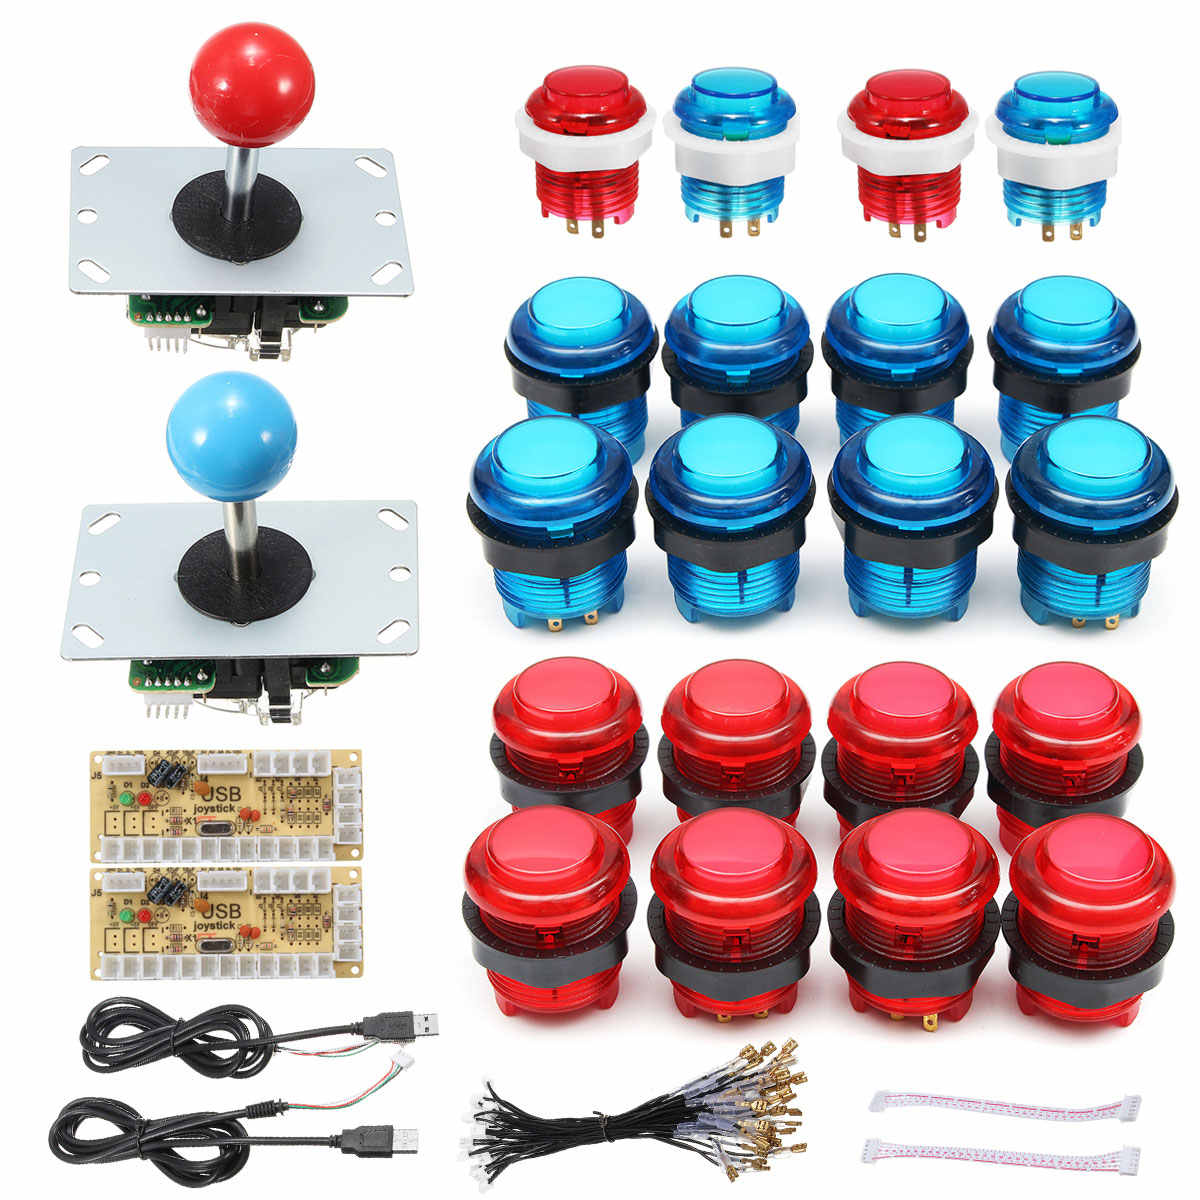 DIY Joystick Arcade Kits 2 Spieler Mit 20 LED Arcade Tasten + 2 Joysticks + 2 USB Encoder Kit + kabel Arcade-Spiel Teile Set